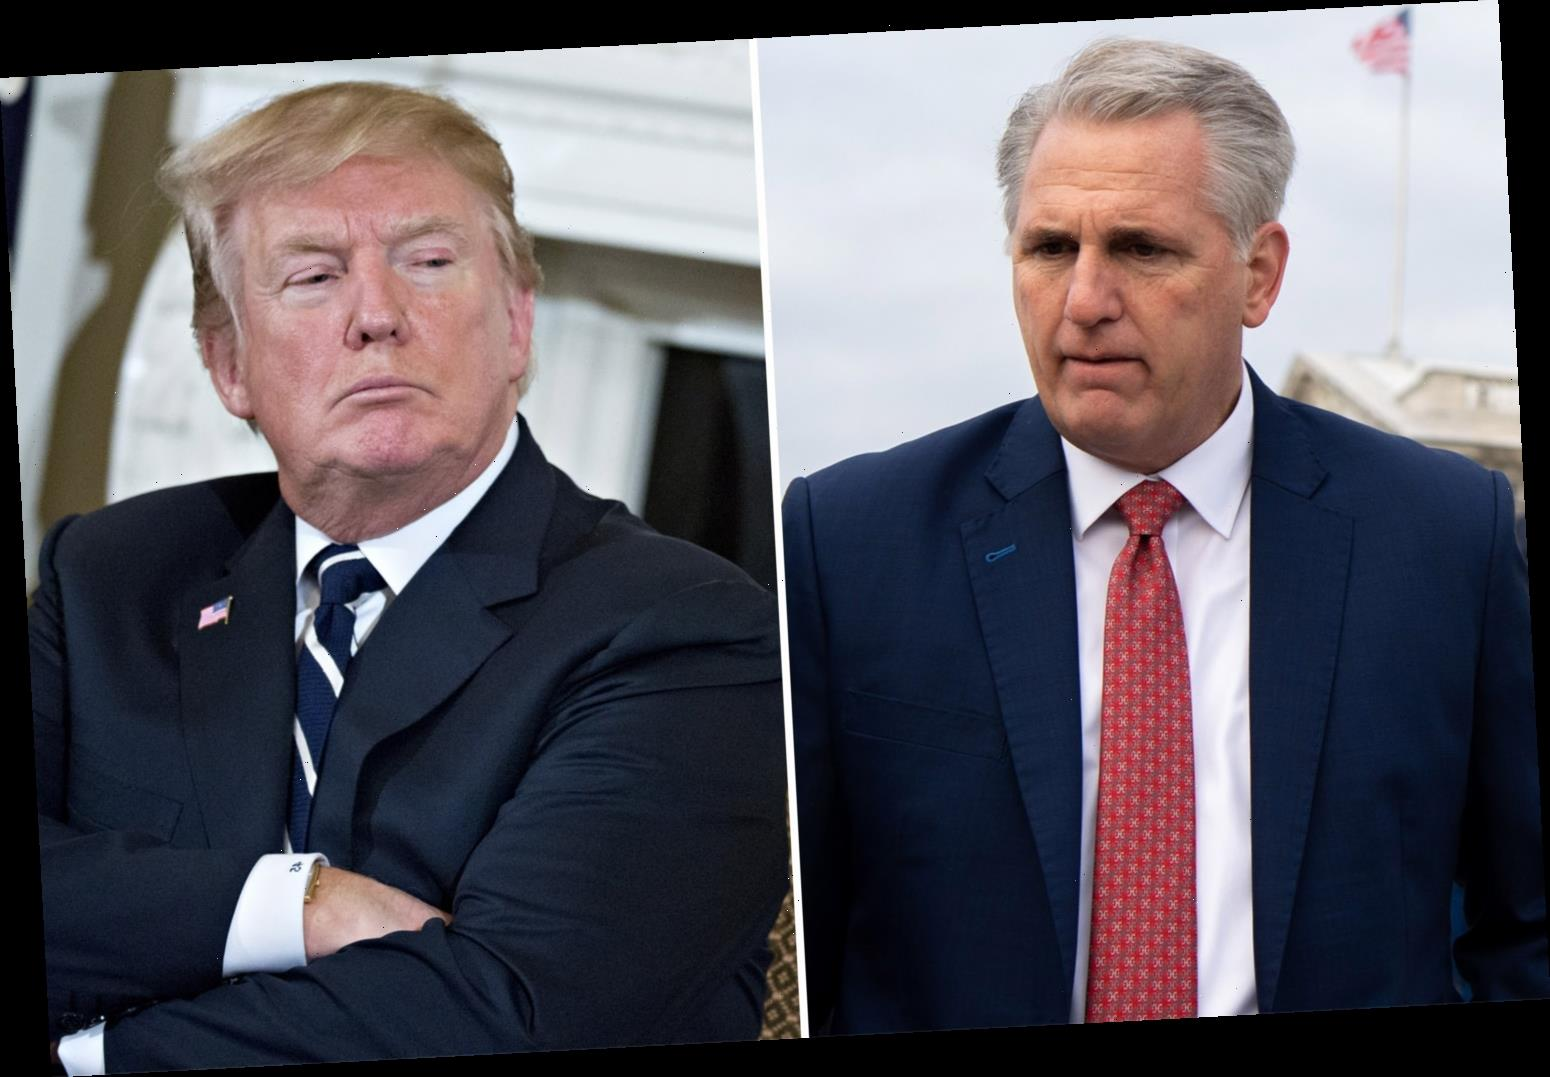 Trump had 'screaming match' with Republican leader Kevin McCarthy as Capitol chaos ensued and with impeachment looming